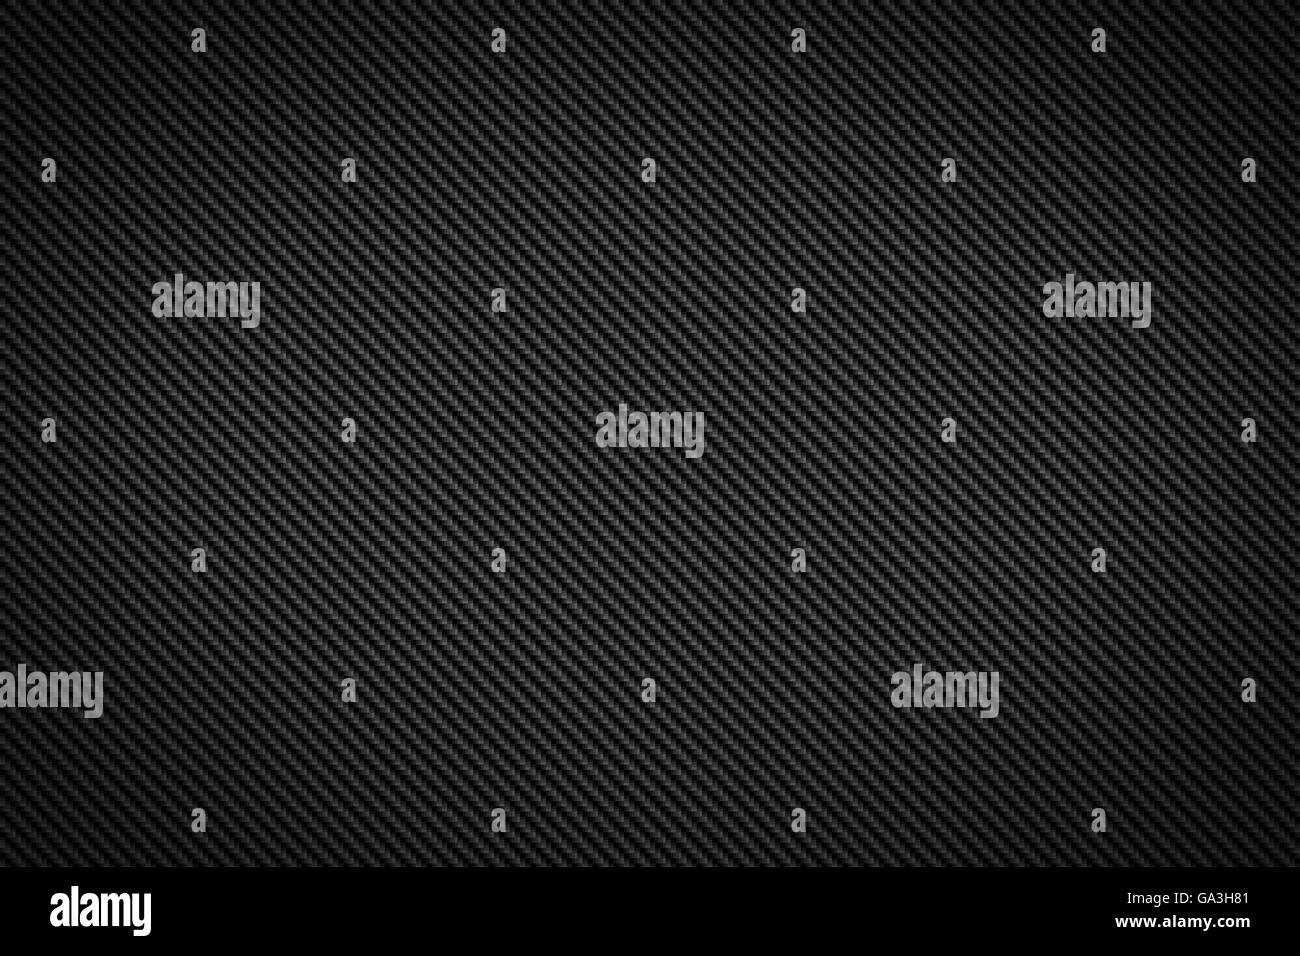 carbon fiber texture background - Stock Image